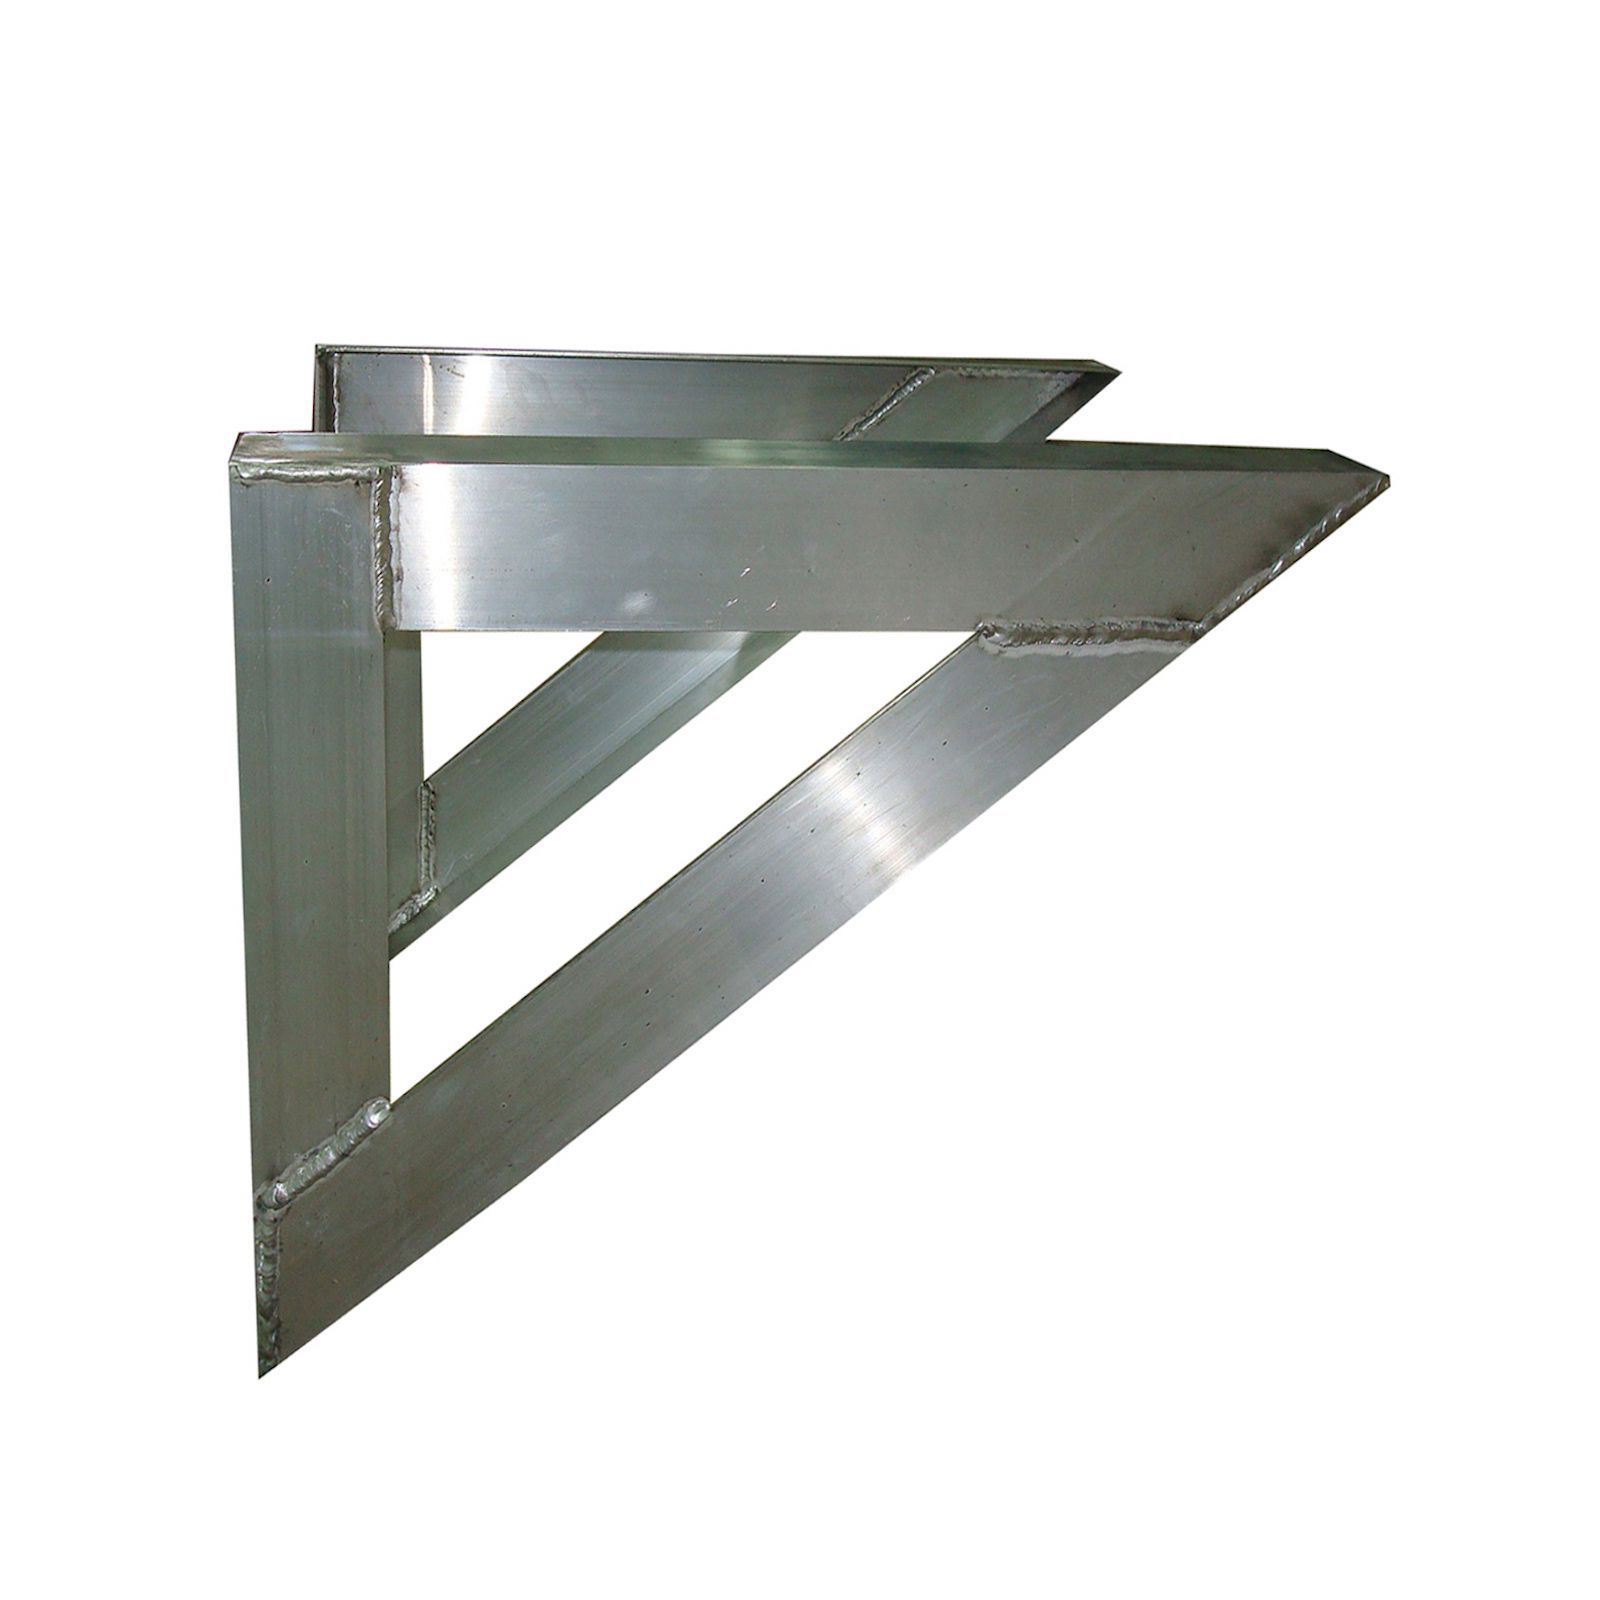 "The Metal Shop 007-845 - 30"" X 36"" Aluminum Wall Support Brackets"